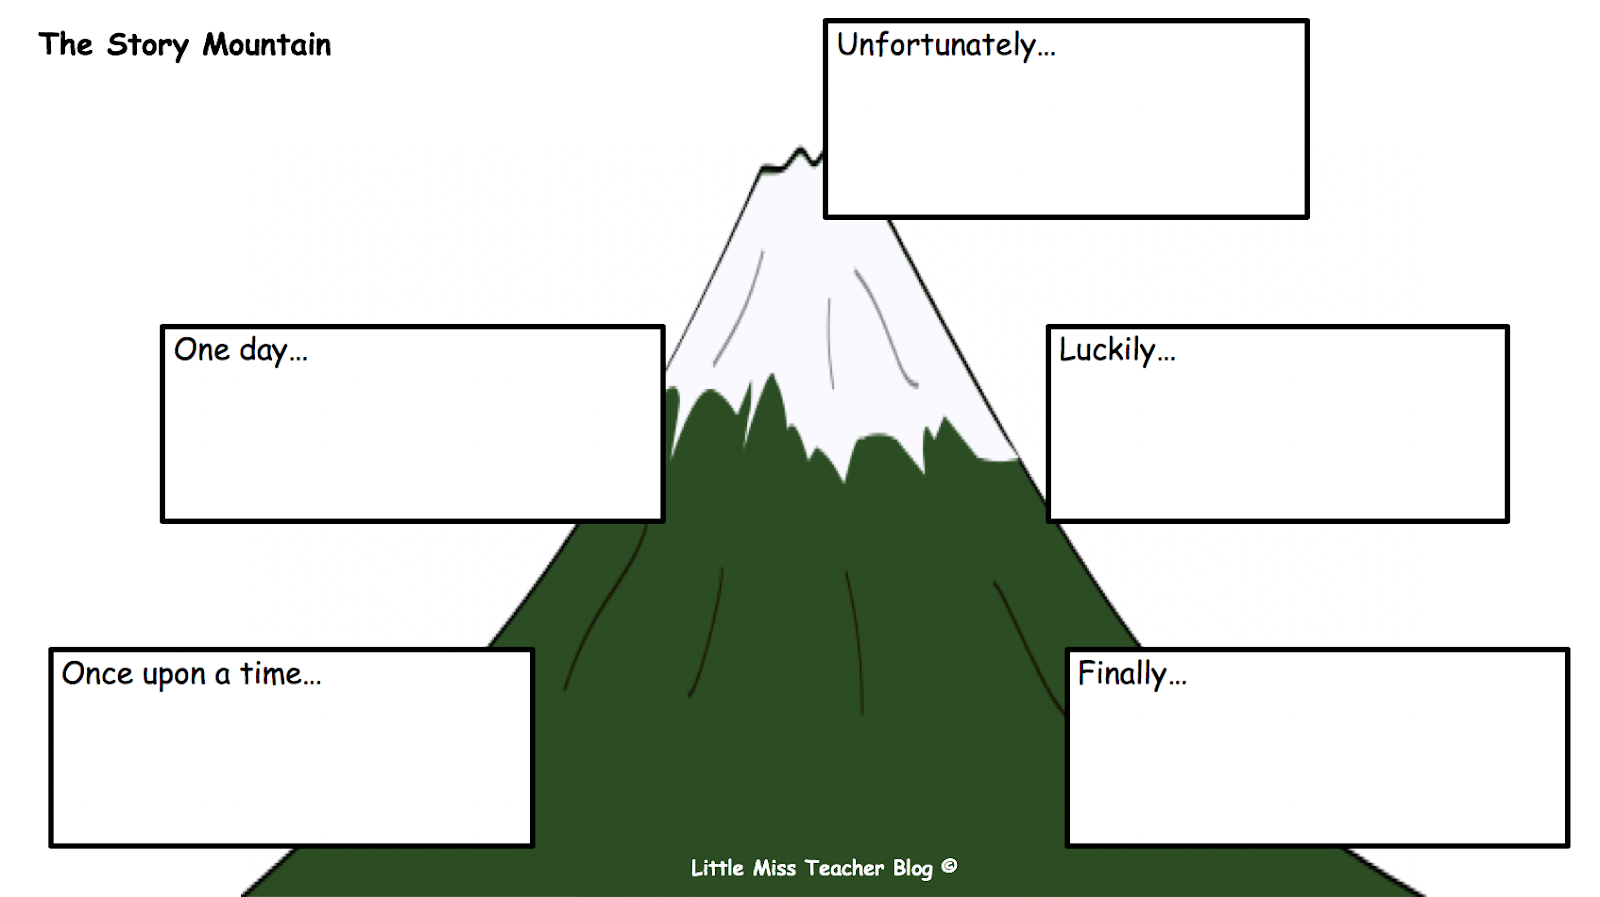 image relating to Story Mountain Printable titled The Tale Mountain Minor Miss out on Instructor Website